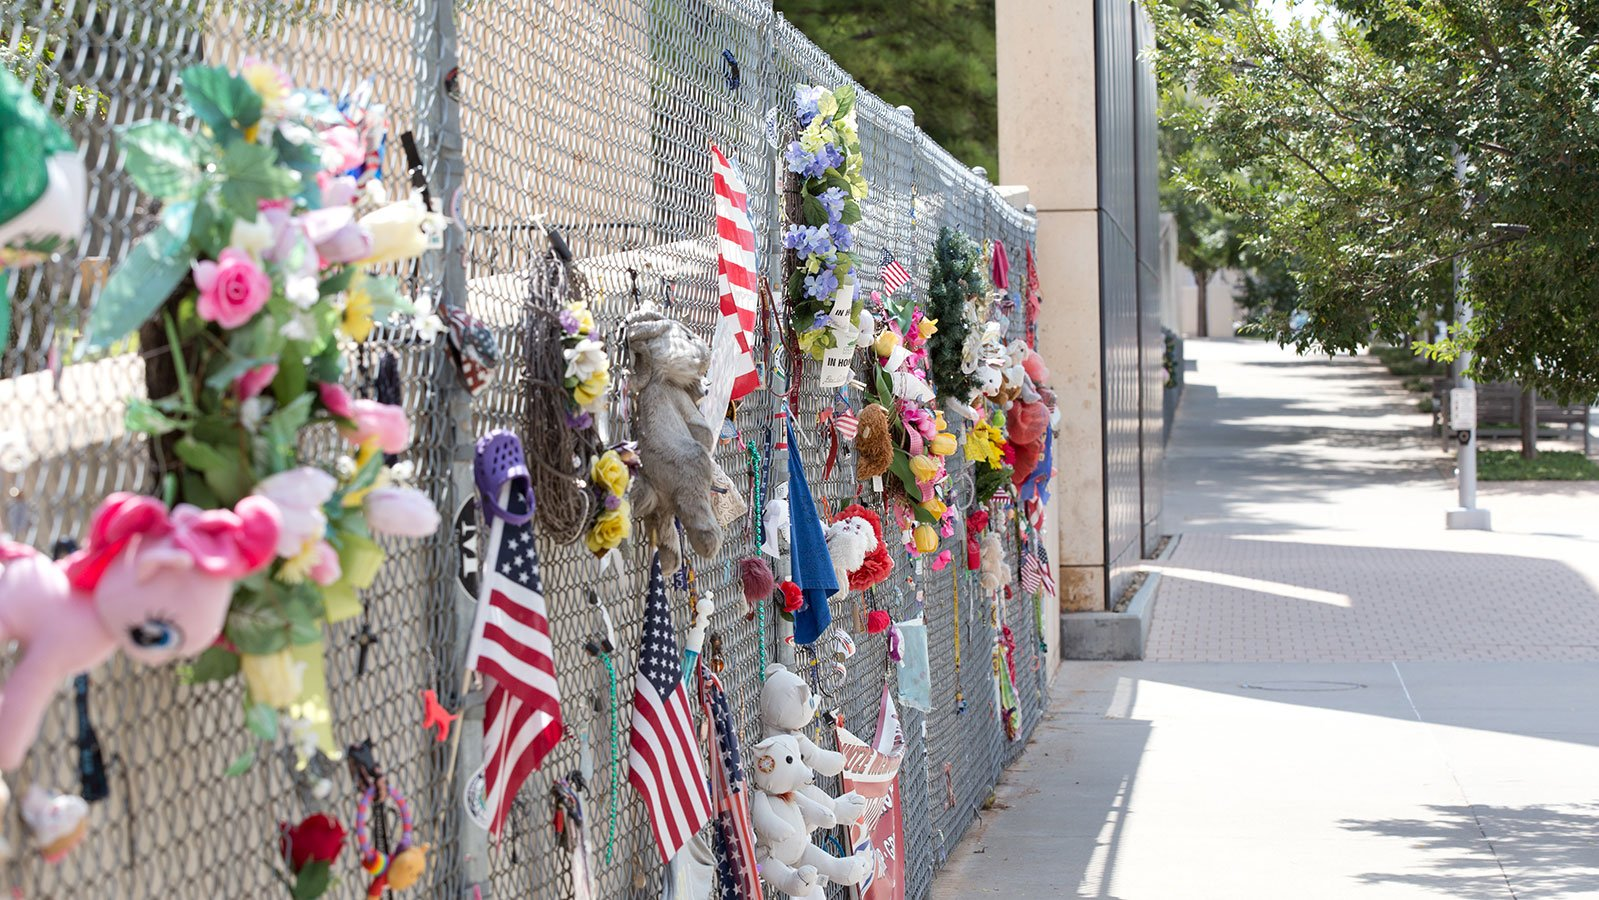 The fence that was originally installed to protect the site of the Murrah Federal Building became a place for people to leave tokens of love and remembrance